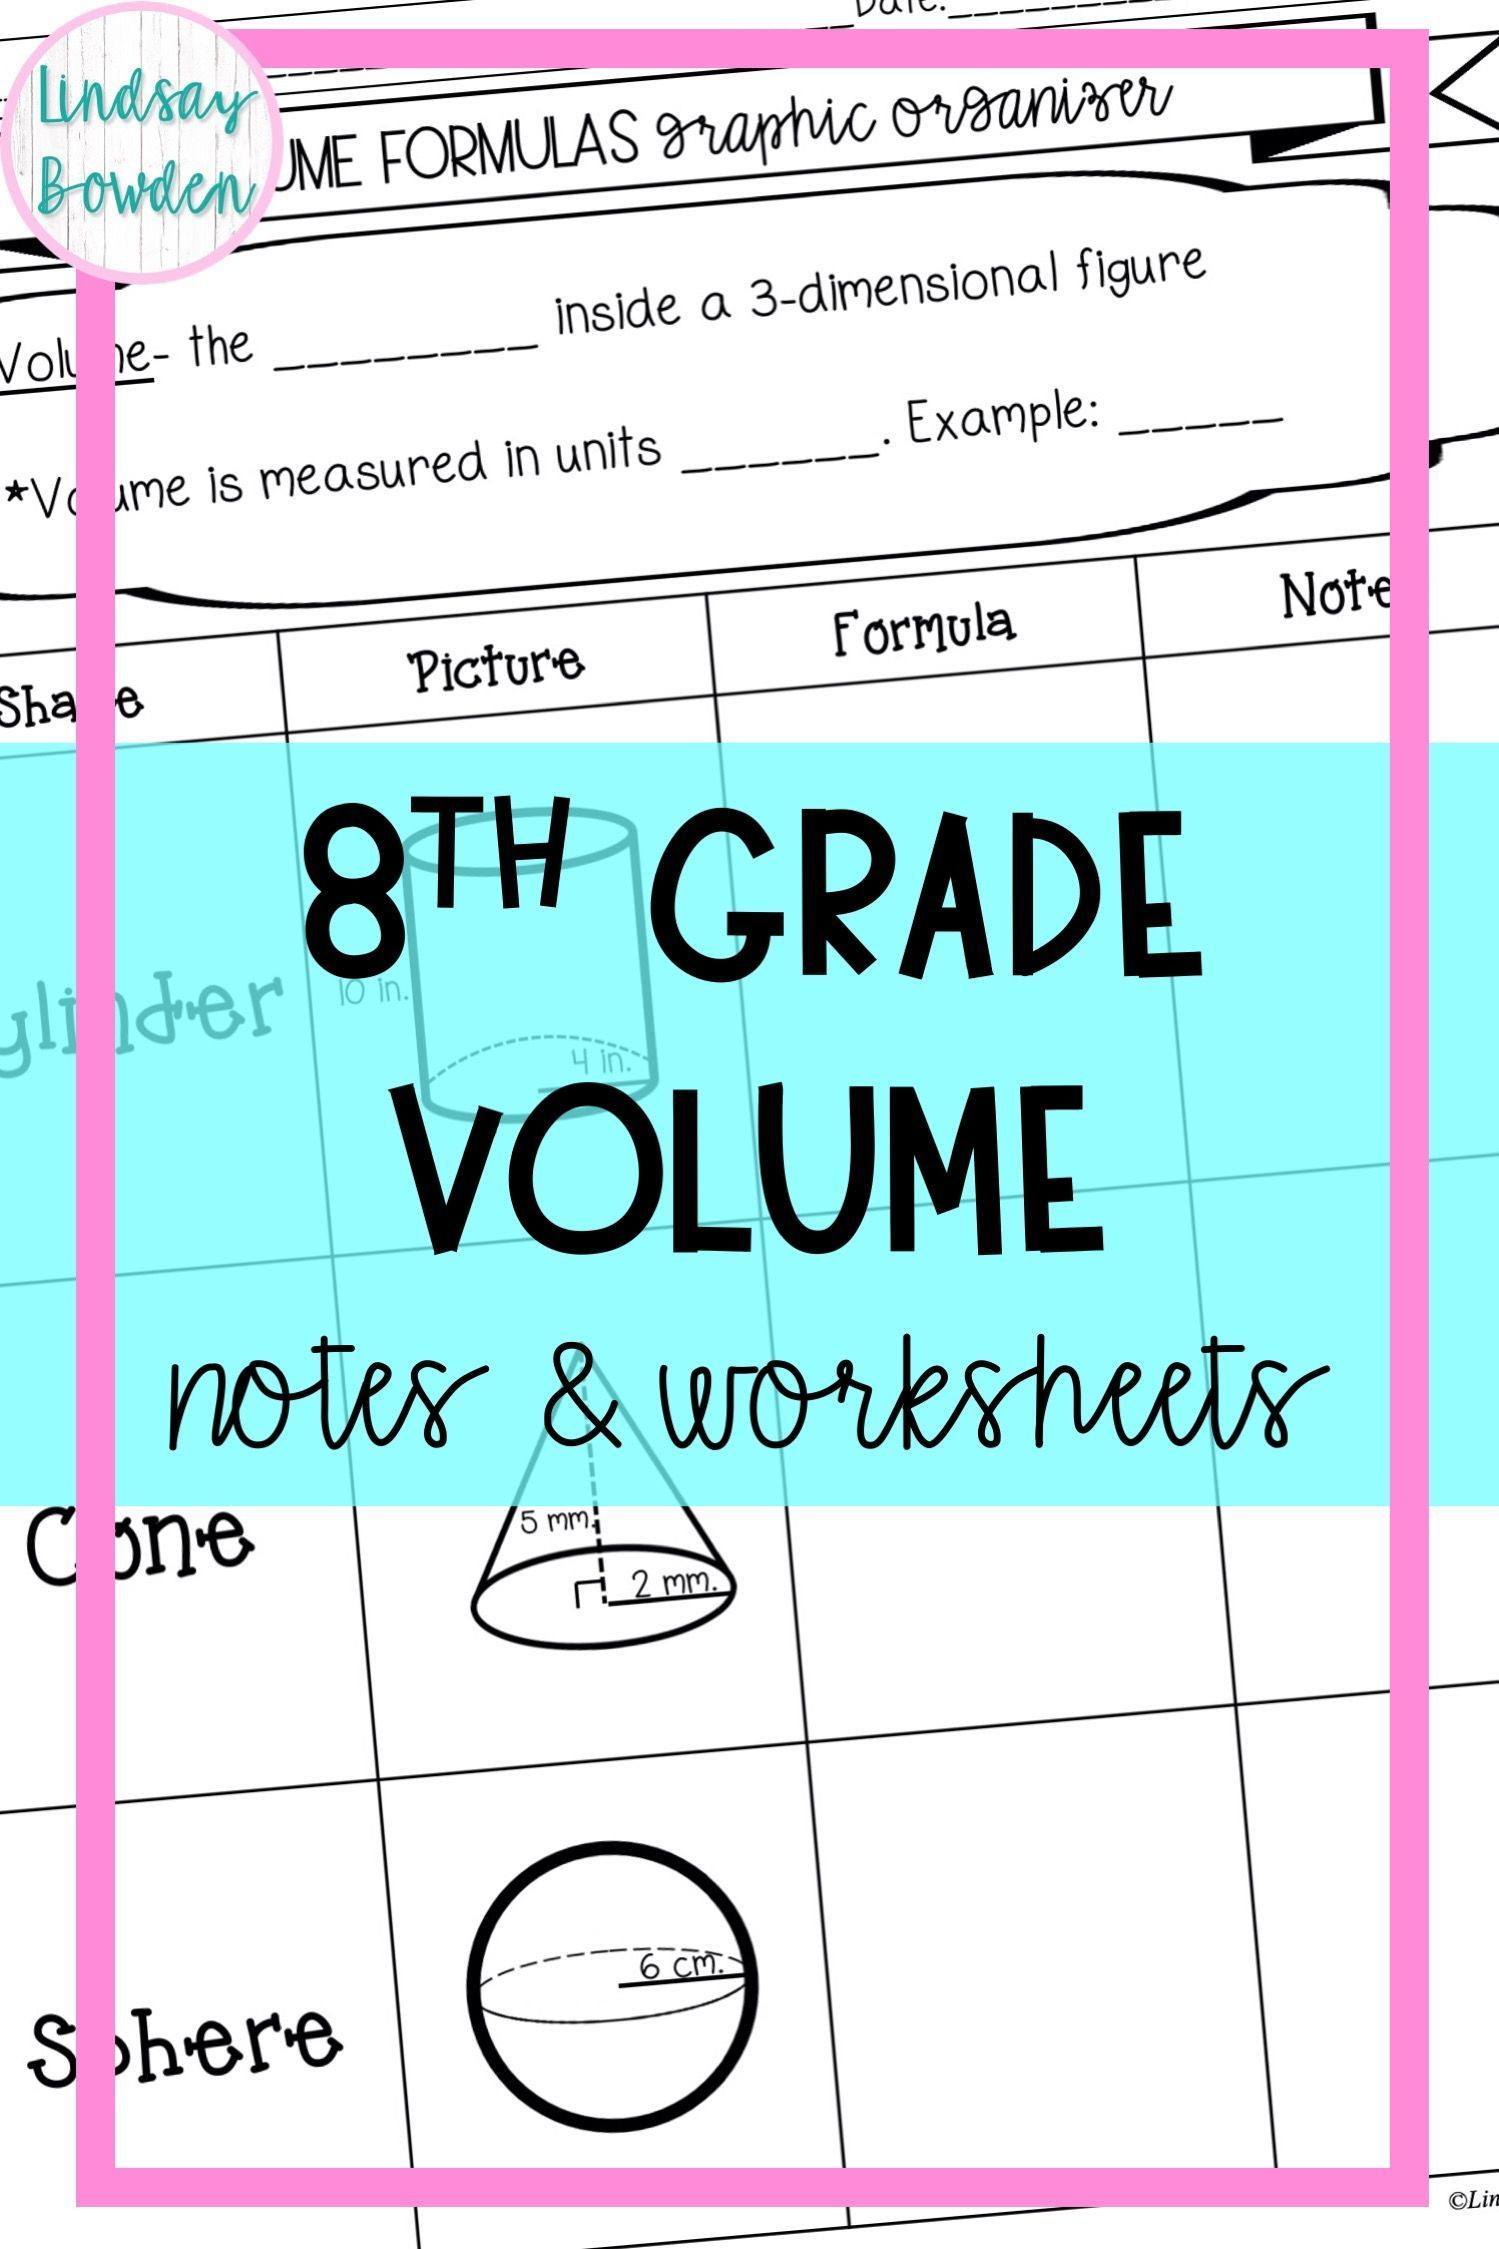 medium resolution of Volume Notes and Worksheets (8th Grade)   Middle school math resources